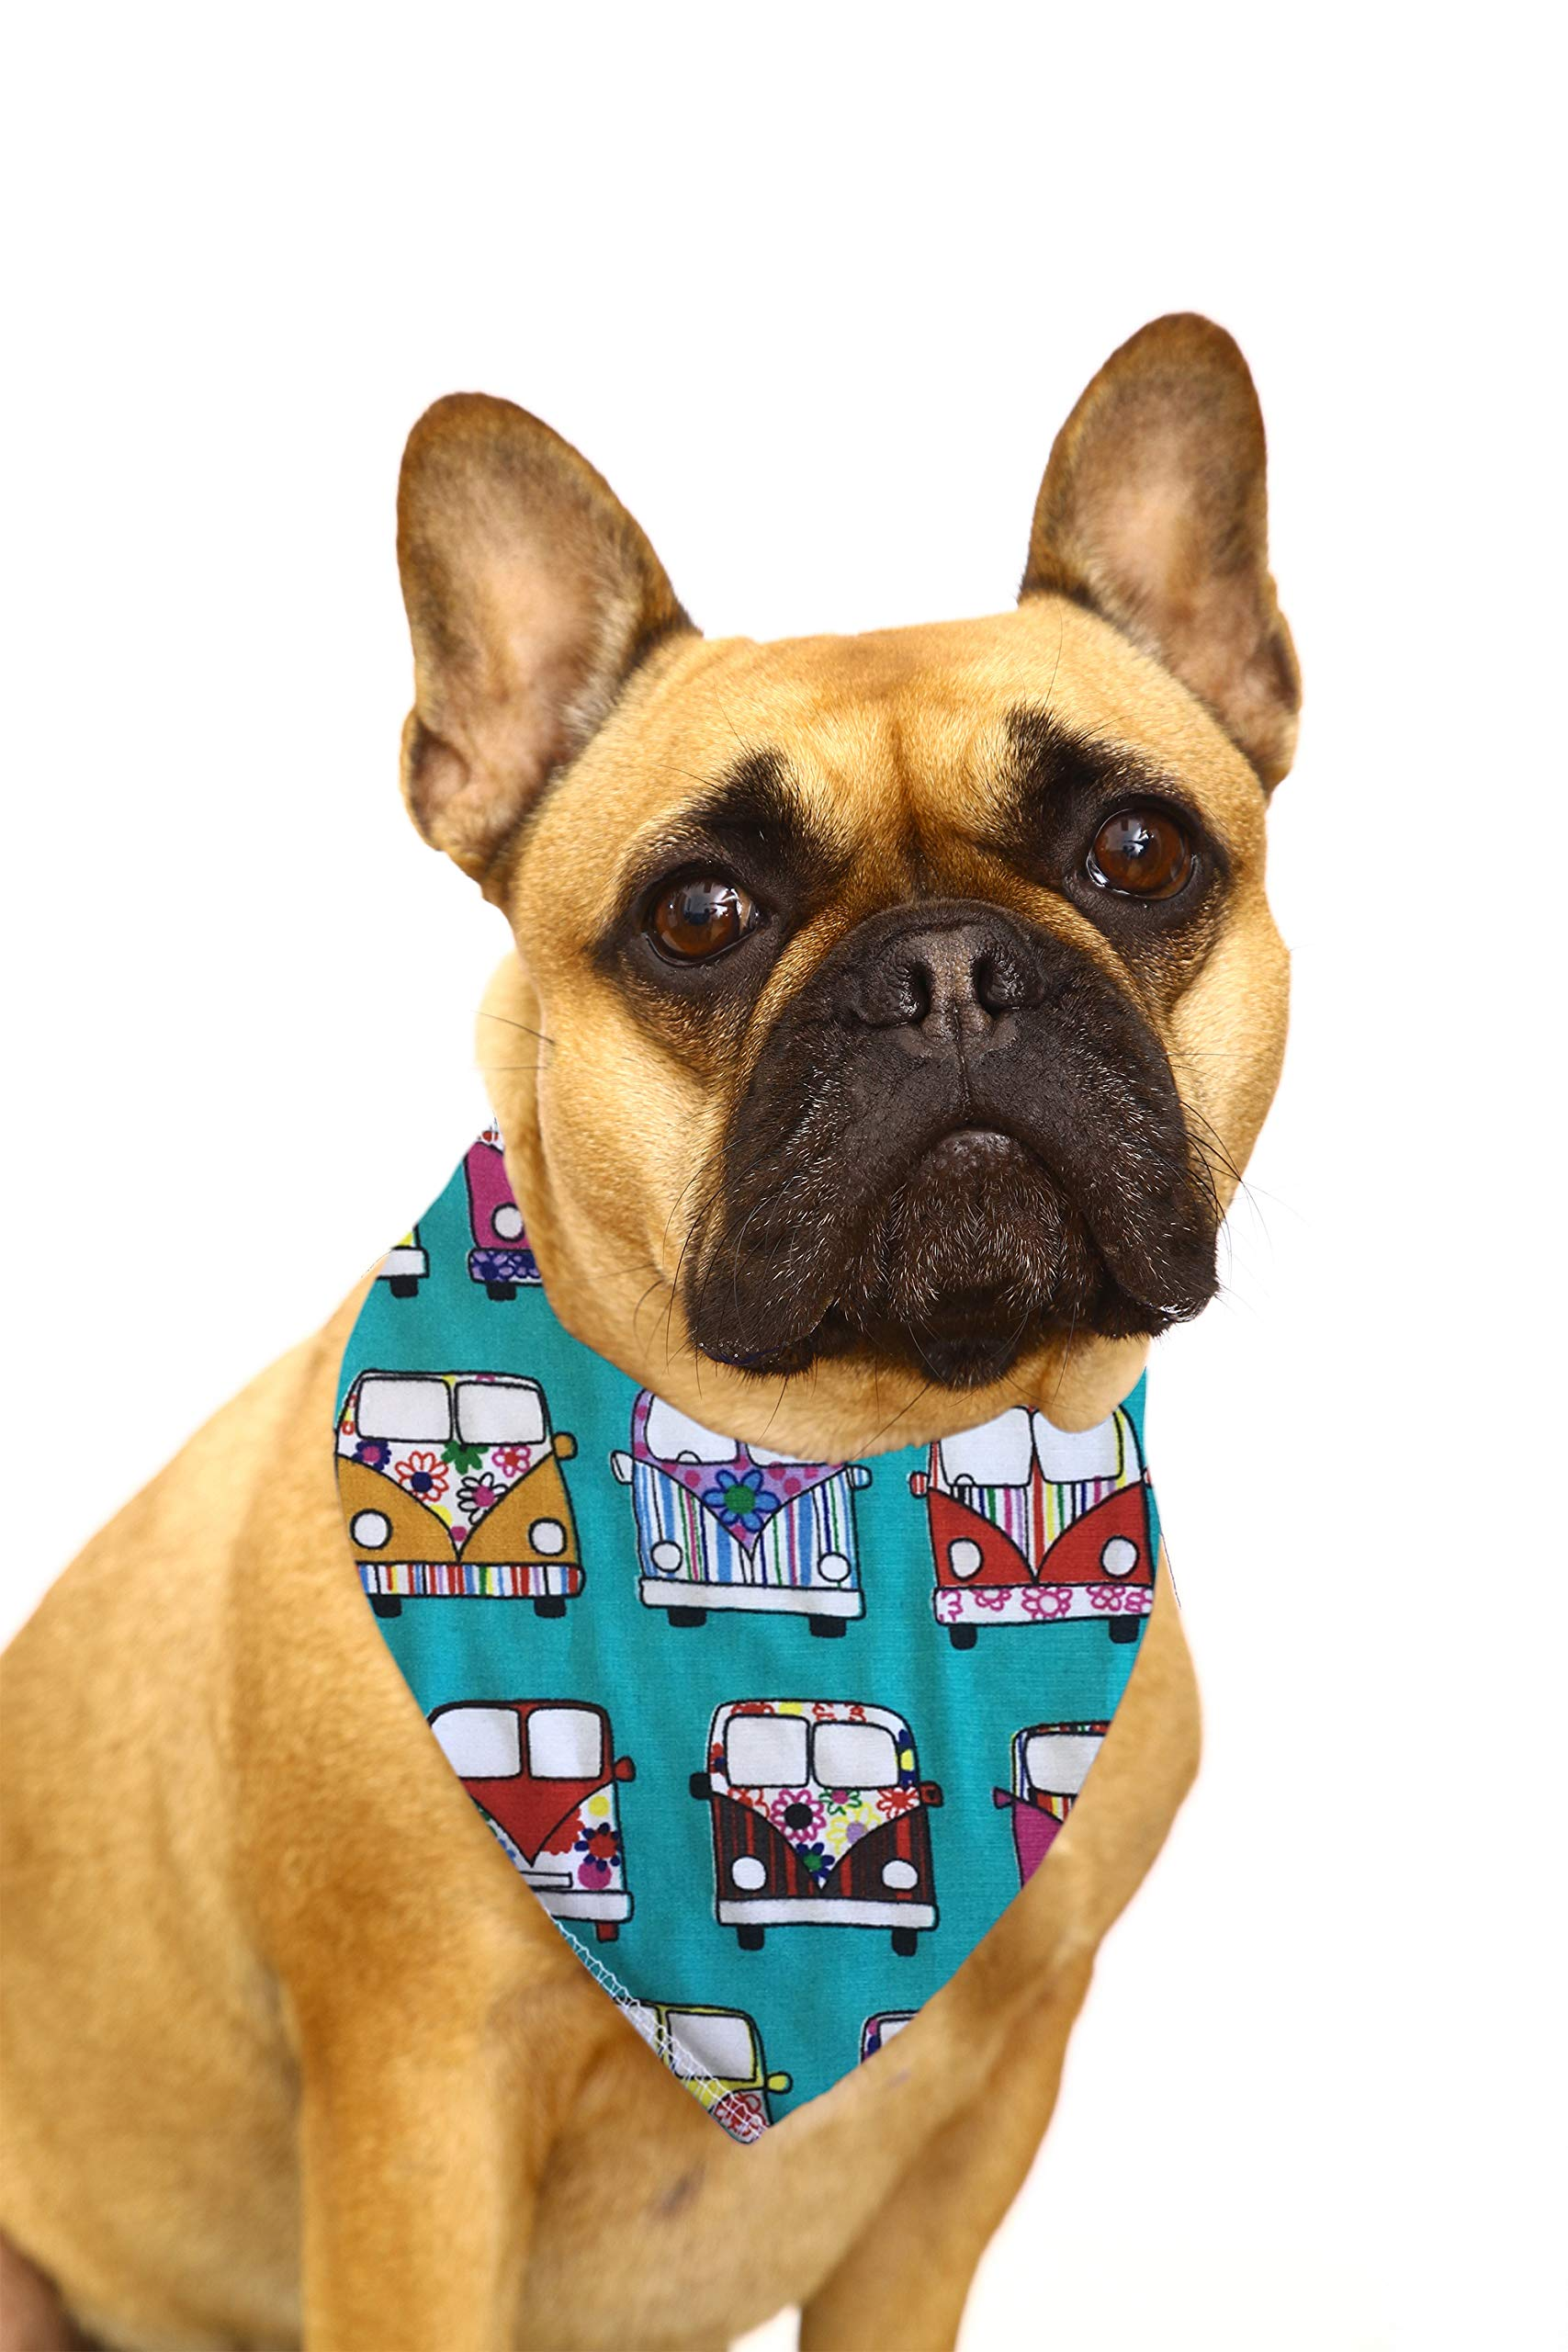 Spoilt Rotten Pets (S2) Branded Turquoise VW Camper Fabric Dog Bandana, Adjustable Neck to Fit Small To Medium Dogs – Neck Size 11″ – 16″ Generally Fits Cocker Spaniel, Border Terrier, Jack Russell, Westies and Shih Tzu Sized Dogs.